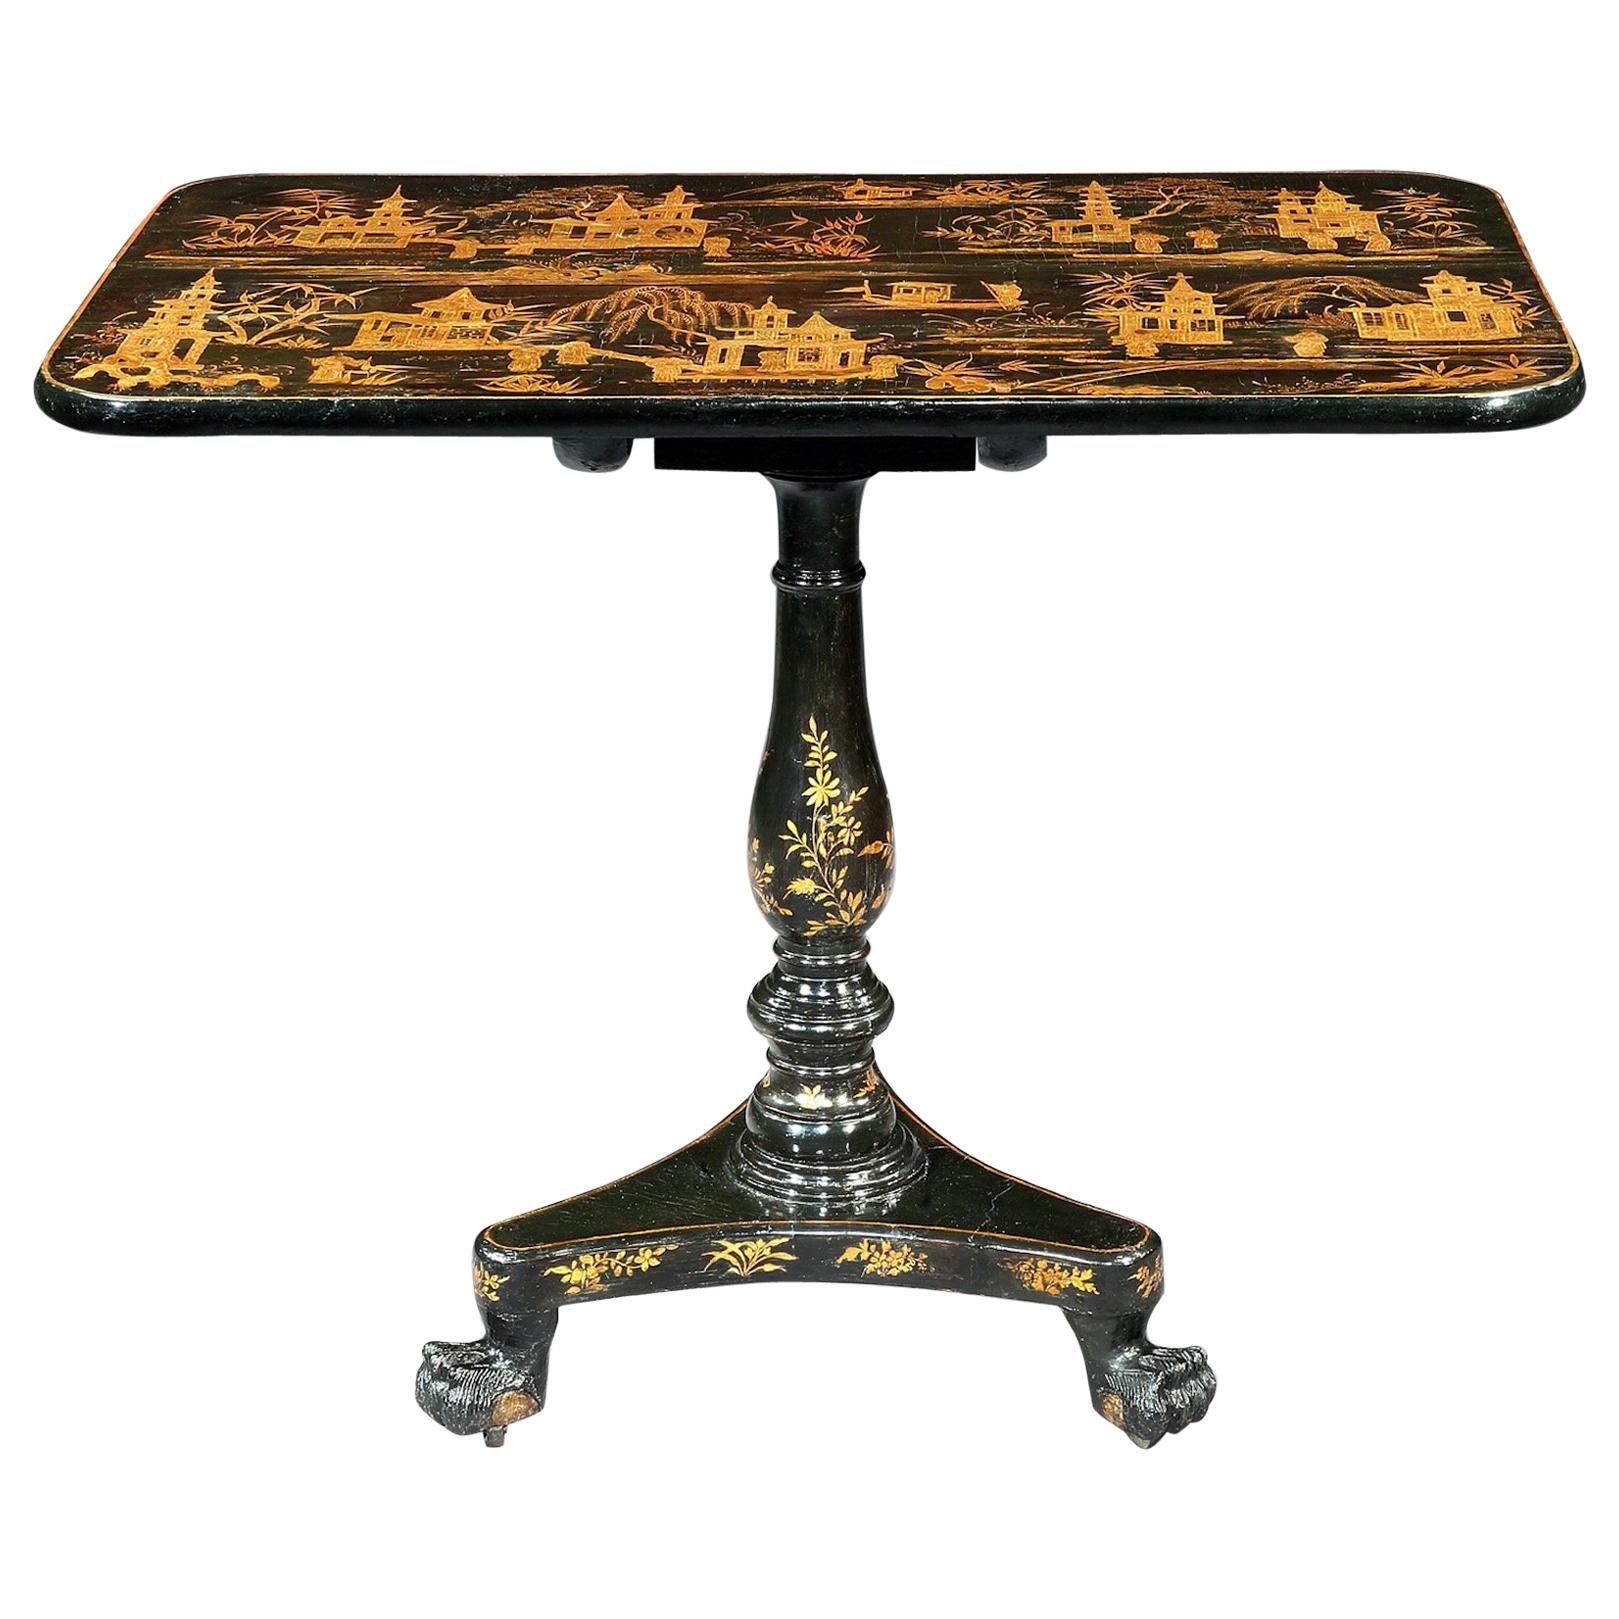 antique and vintage dessert tables tilt top for master wooden accent table small round cocktail patio dining set cover quality furniture nite stands keter cooler tall fitted nic